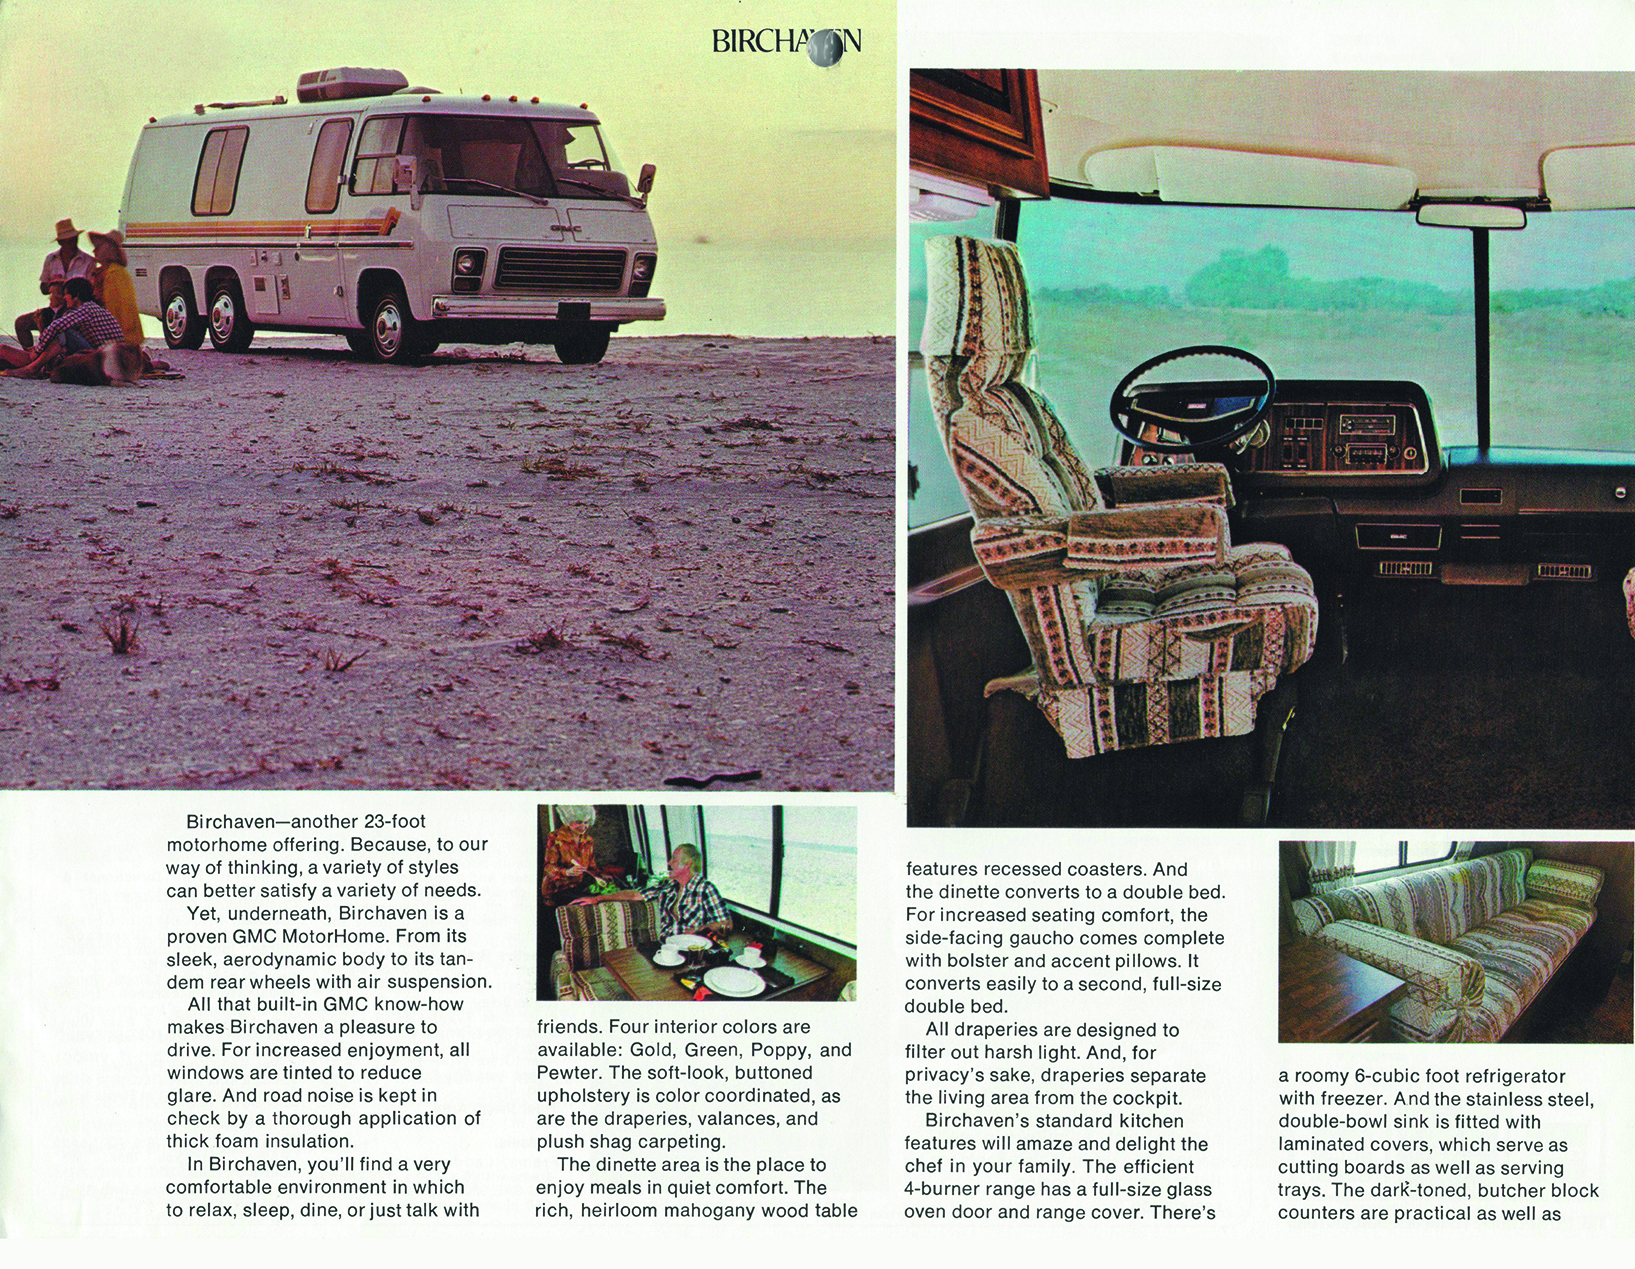 1976 birchaven brochure – black background (source: bill bryant)